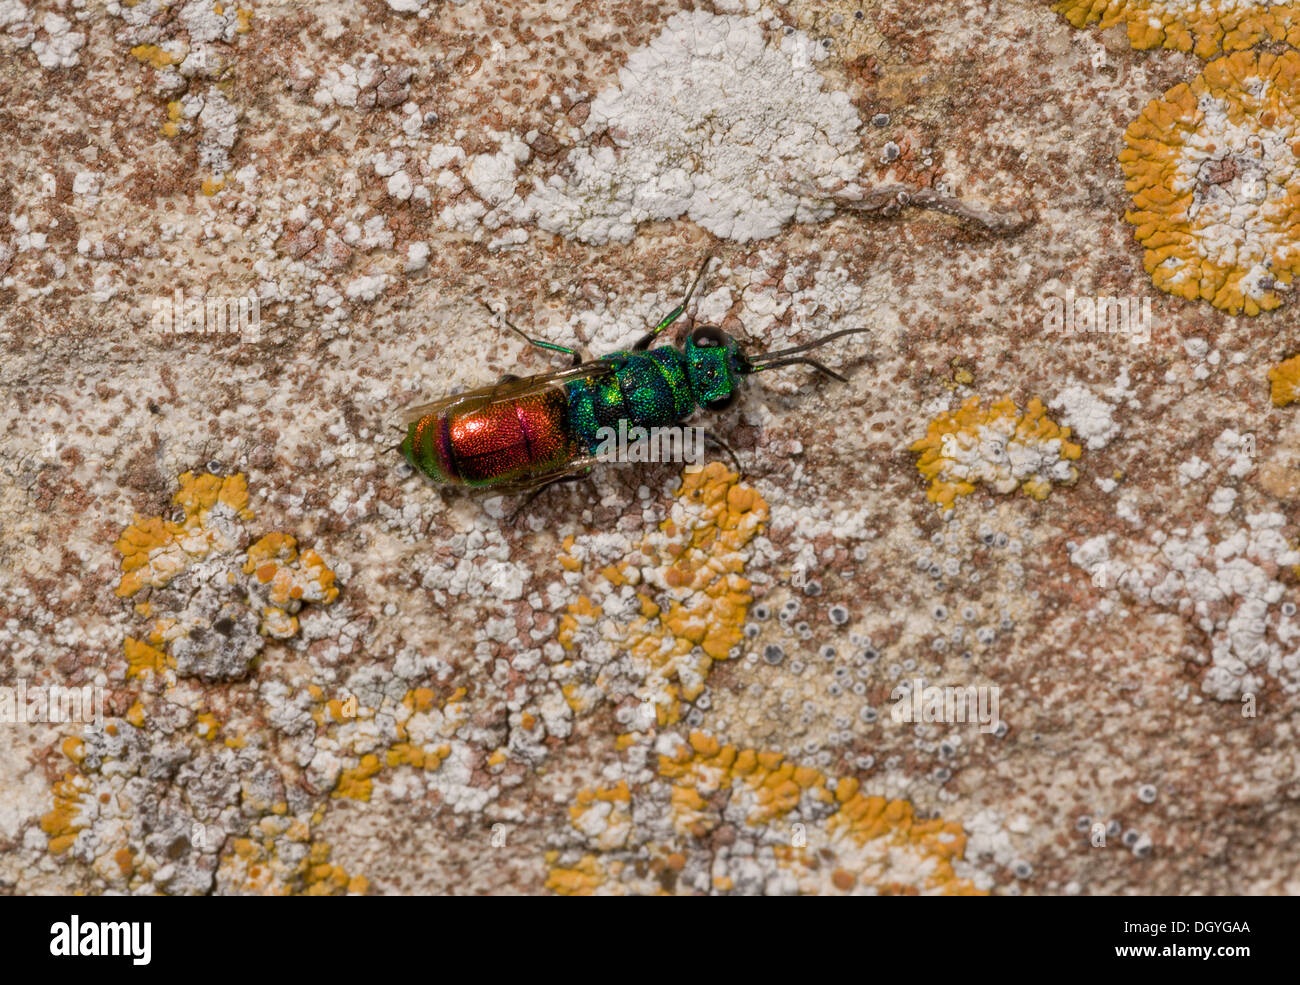 A ruby-tailed wasp or Jewel wasp, Chrysis ignita agg. - female searching for active mason wasp nests. Dorset - Stock Image